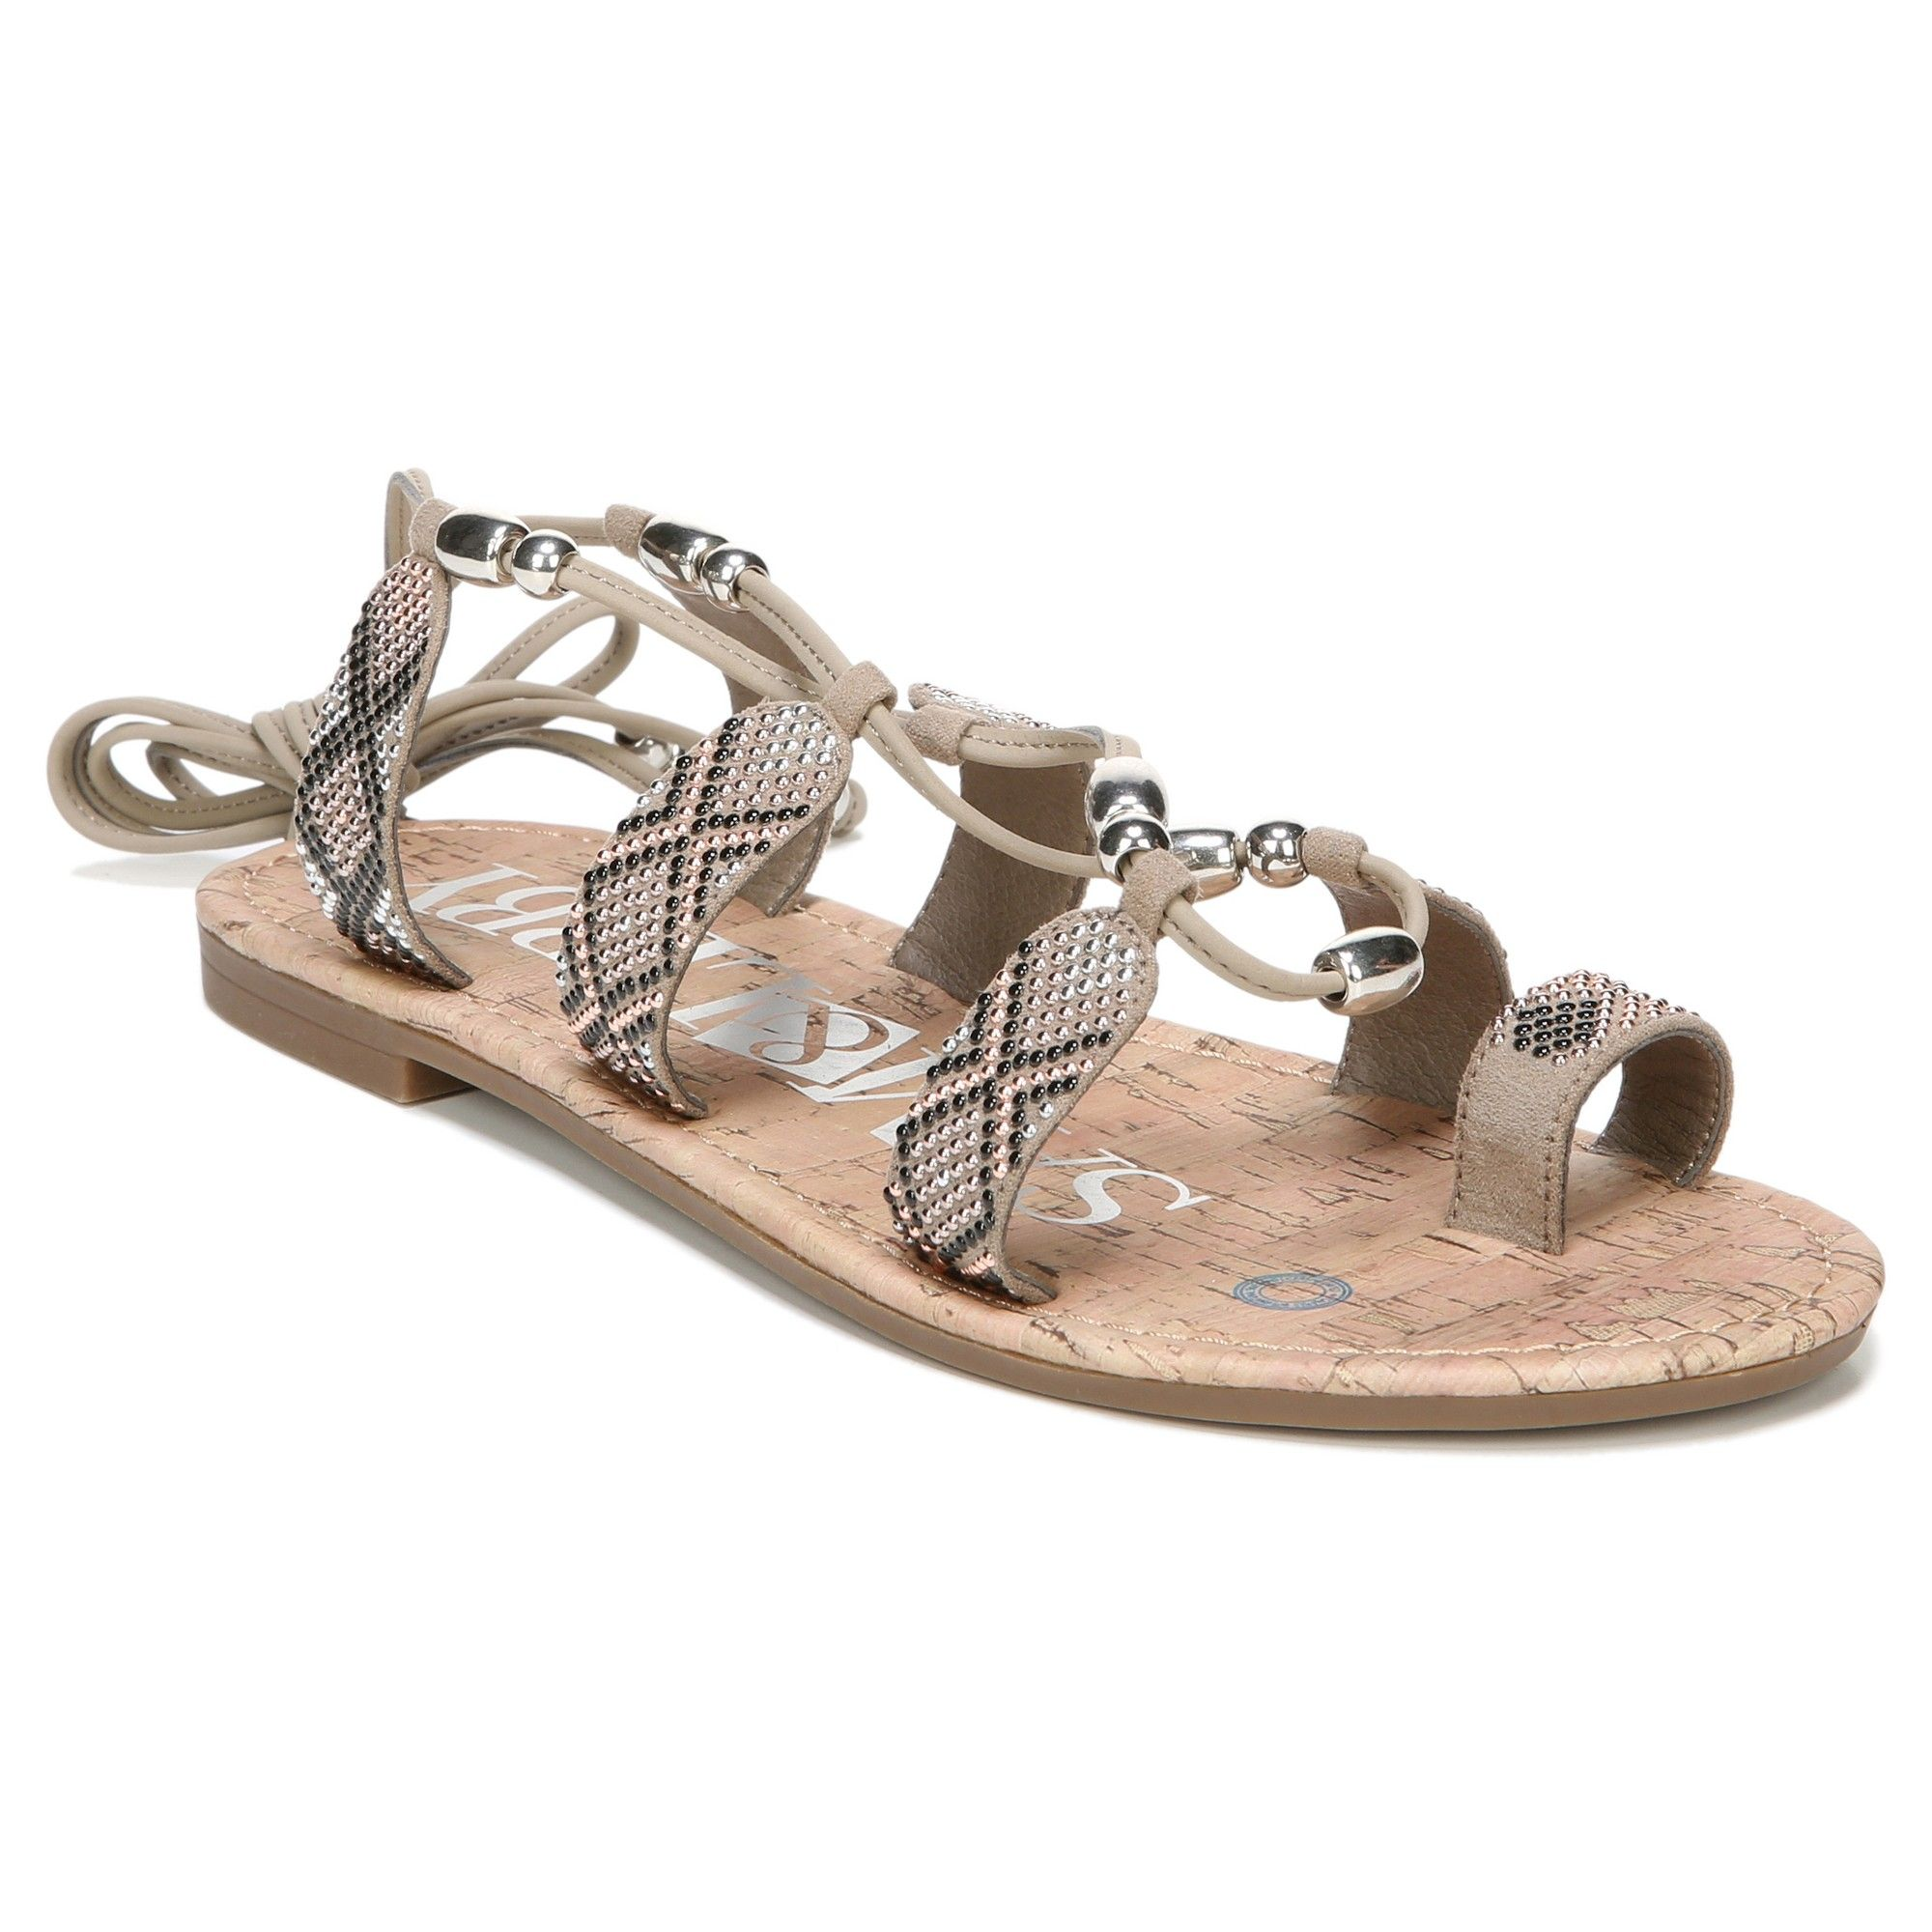 2c2ab6c2fb8b Women s Sam   Libby Bethany Gladiator Sandals - Bronze 5.5